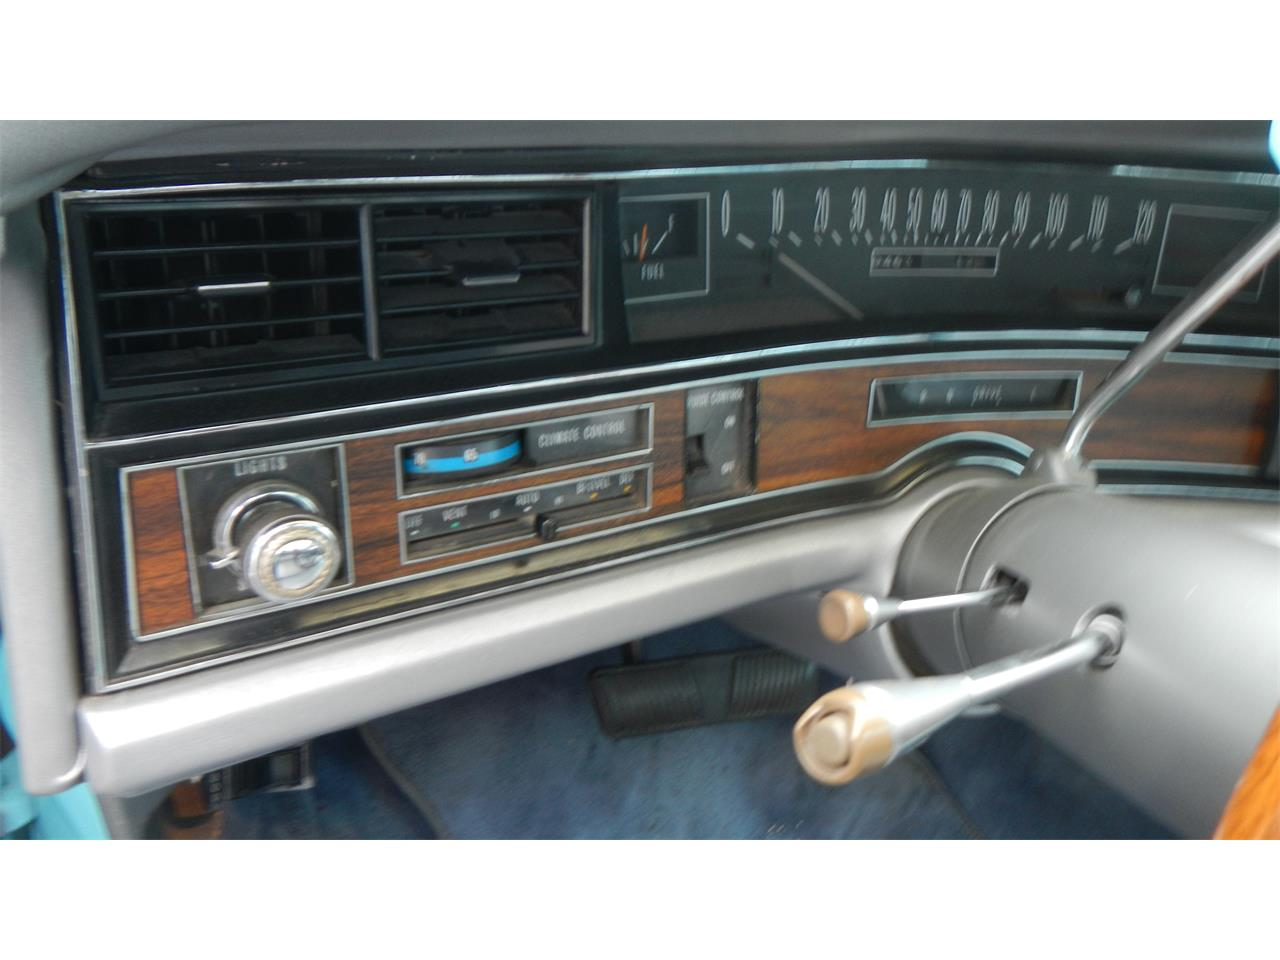 1973 Cadillac Eldorado for sale in Woodland Hills, CA – photo 37